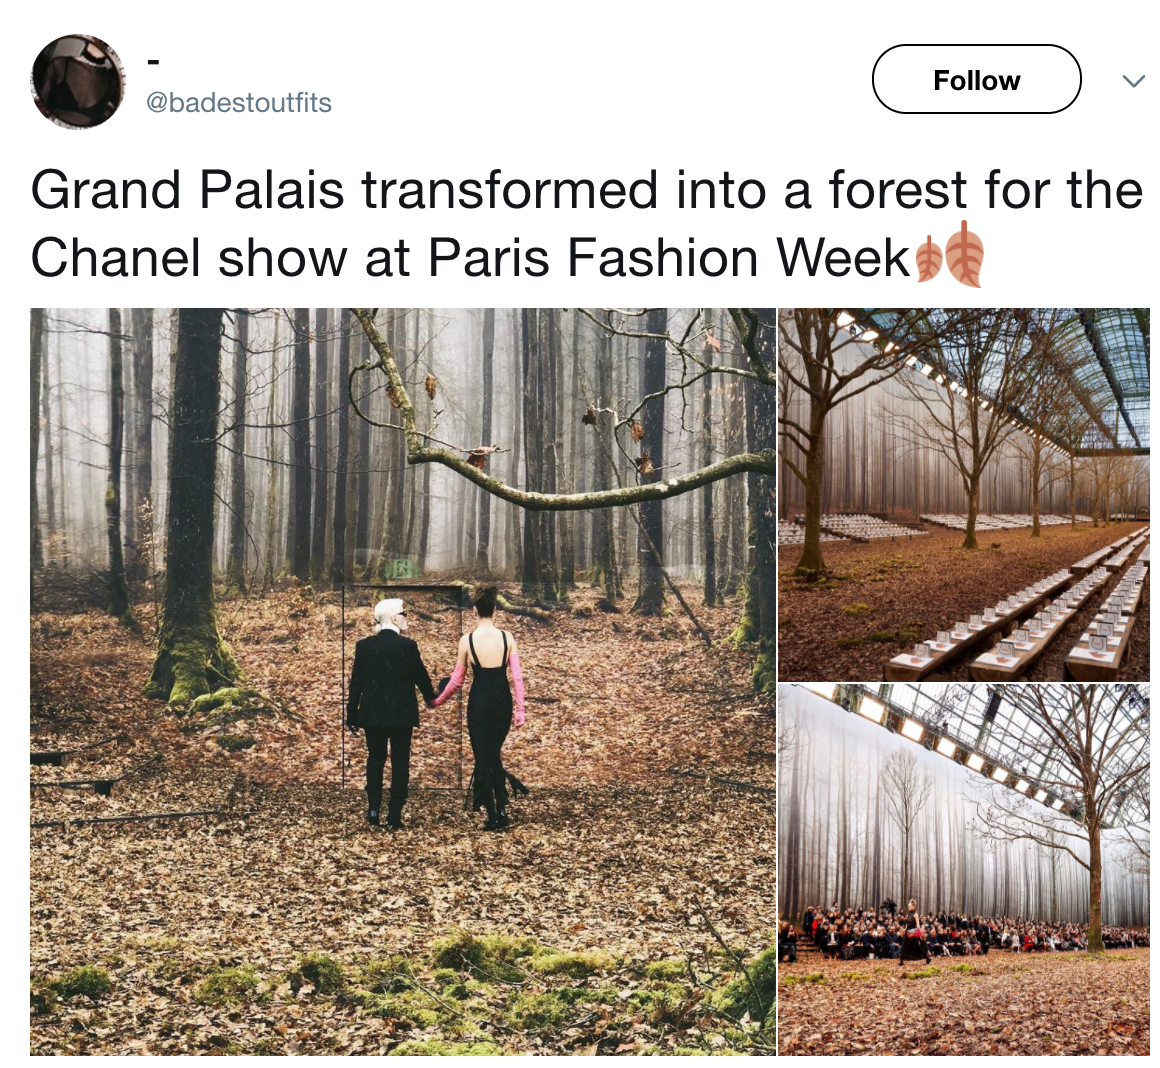 A tweet showing the Grand Palais transformed into a forest